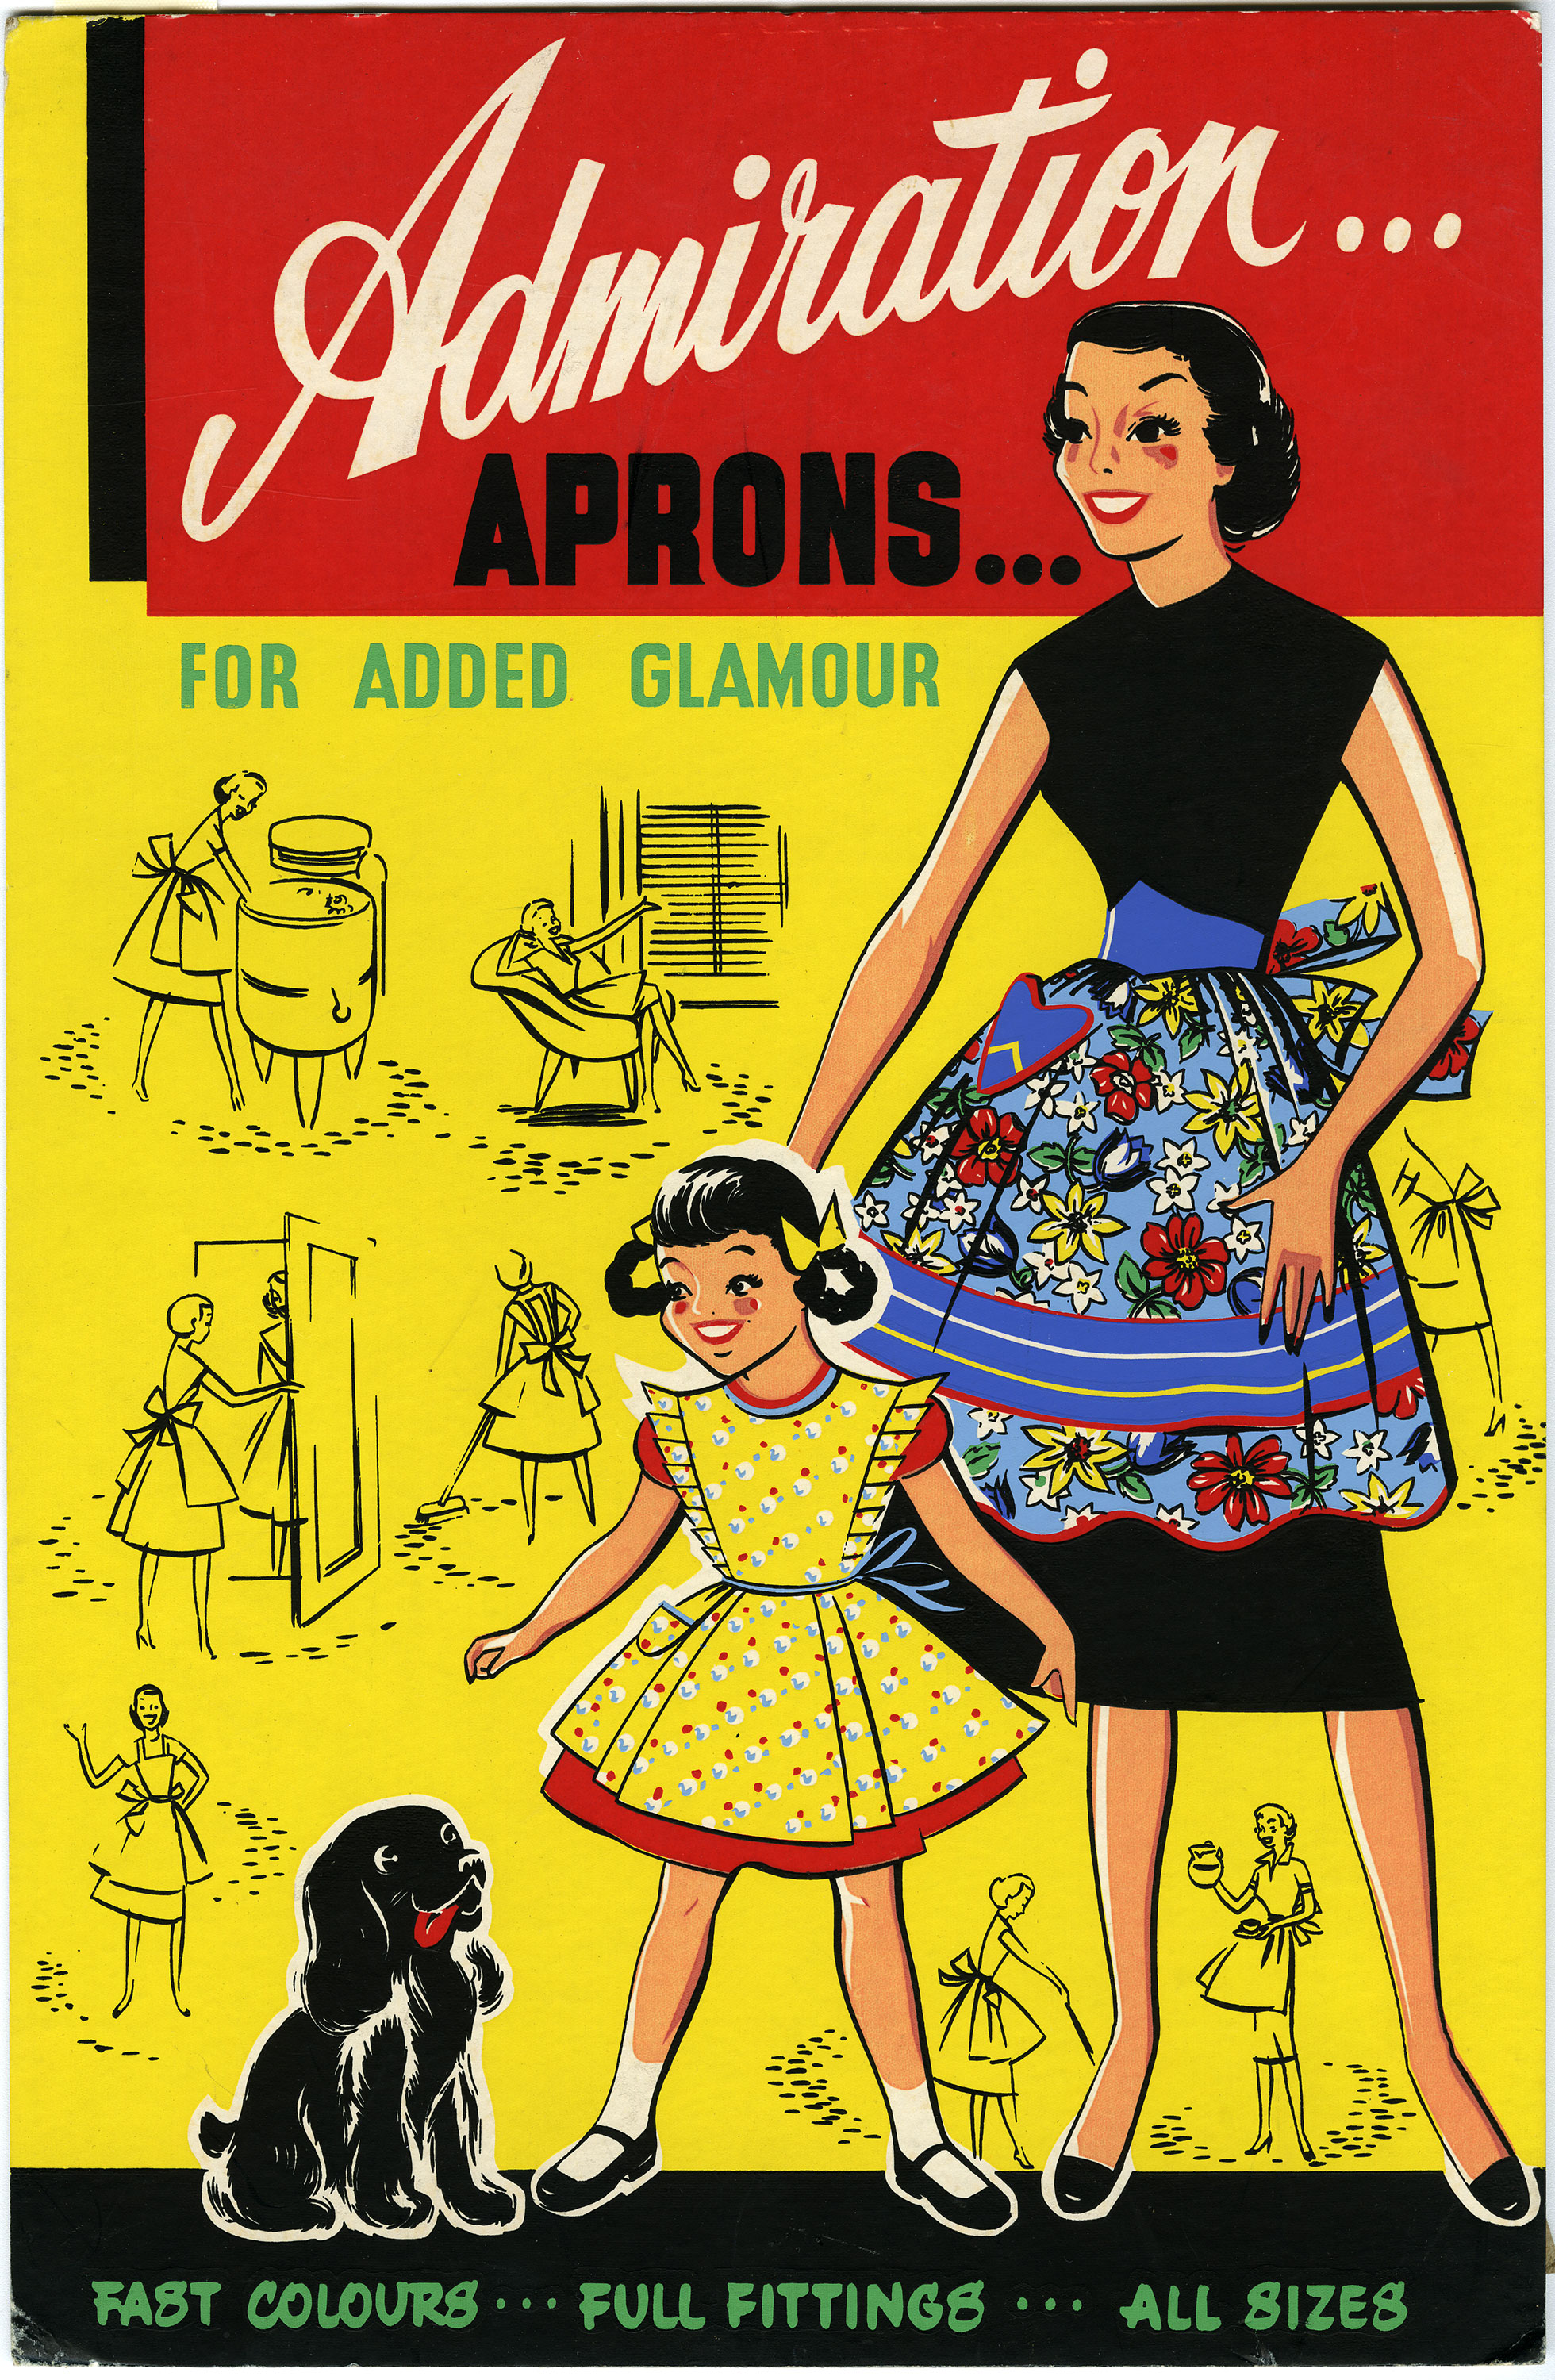 Abikhair---advert-yellow-red-Admiration-Aprons---ARM-09.jpg